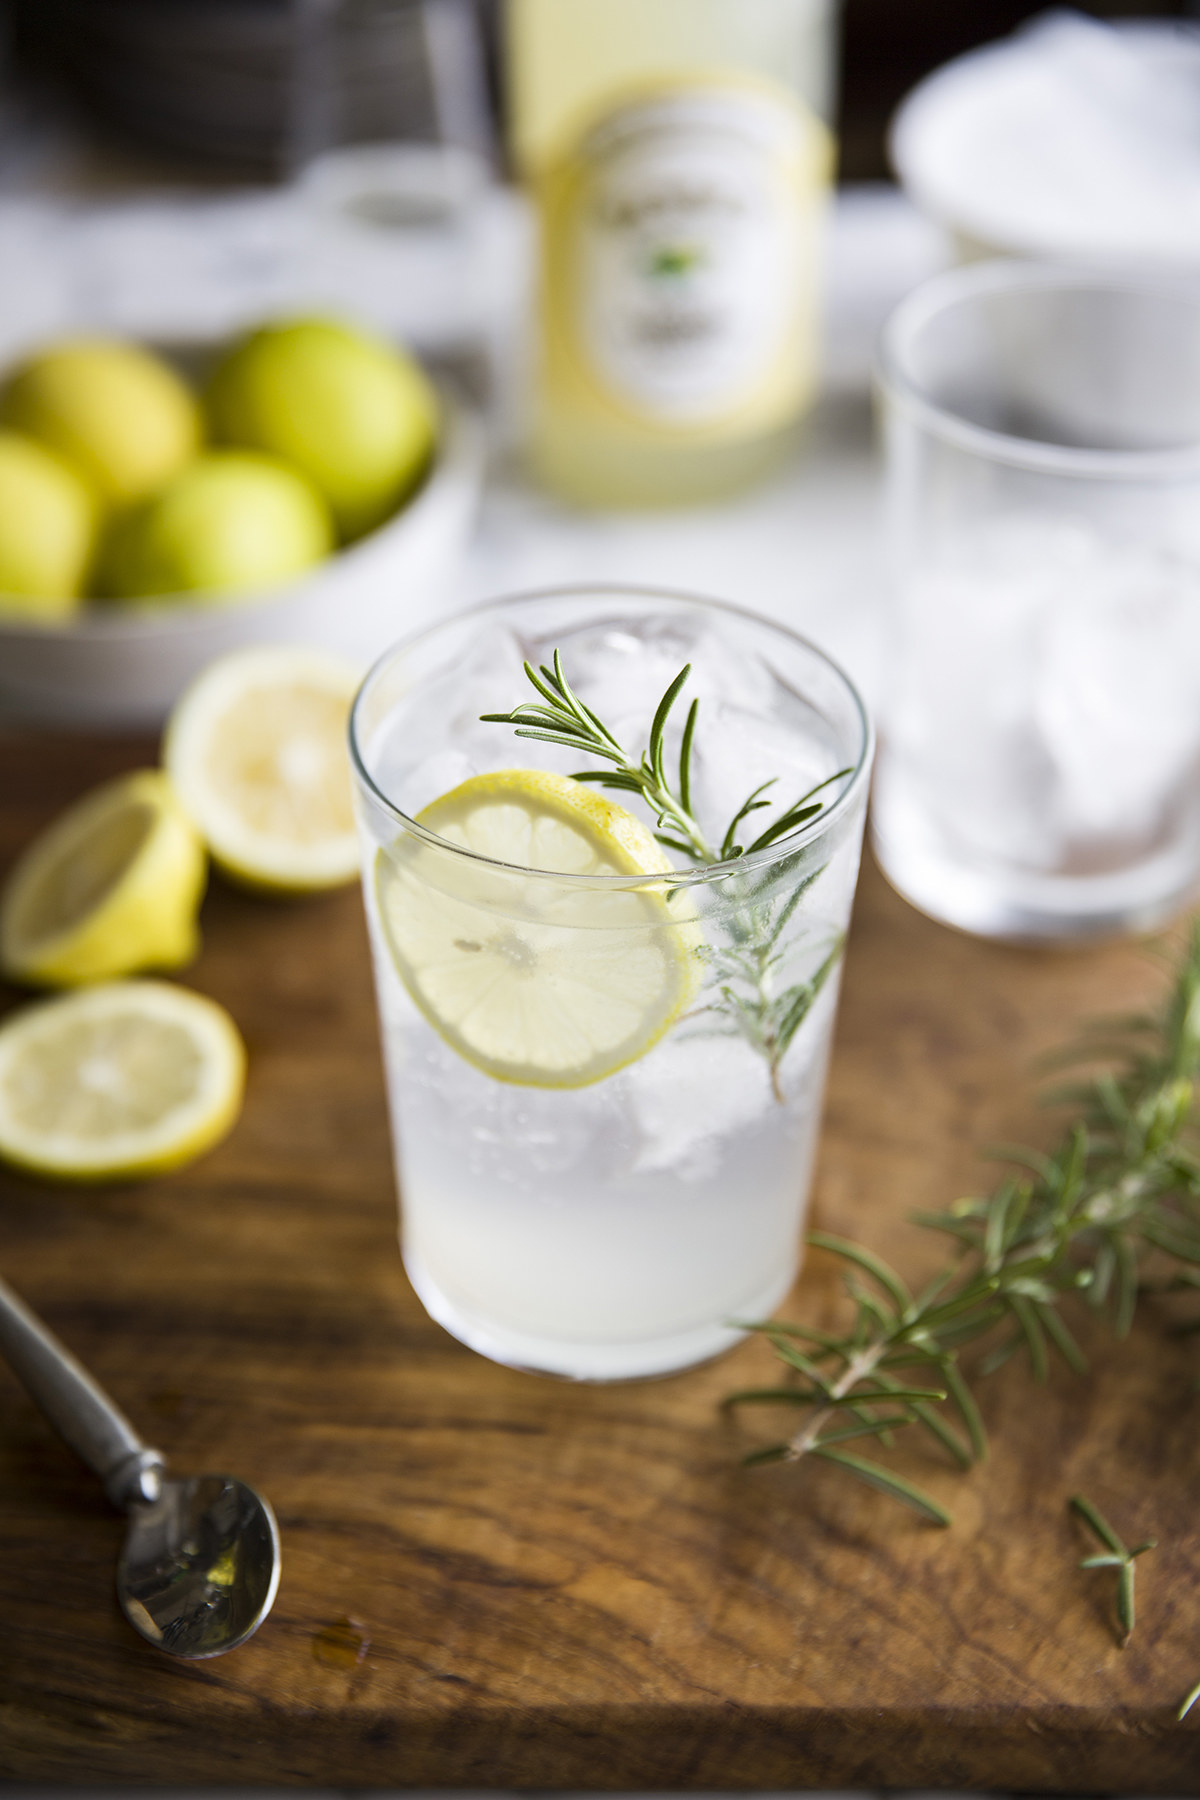 Tangy meets herbaceous in this elegant take on a classic. Who says a summer cocktail can't be simple? Get the recipe here.